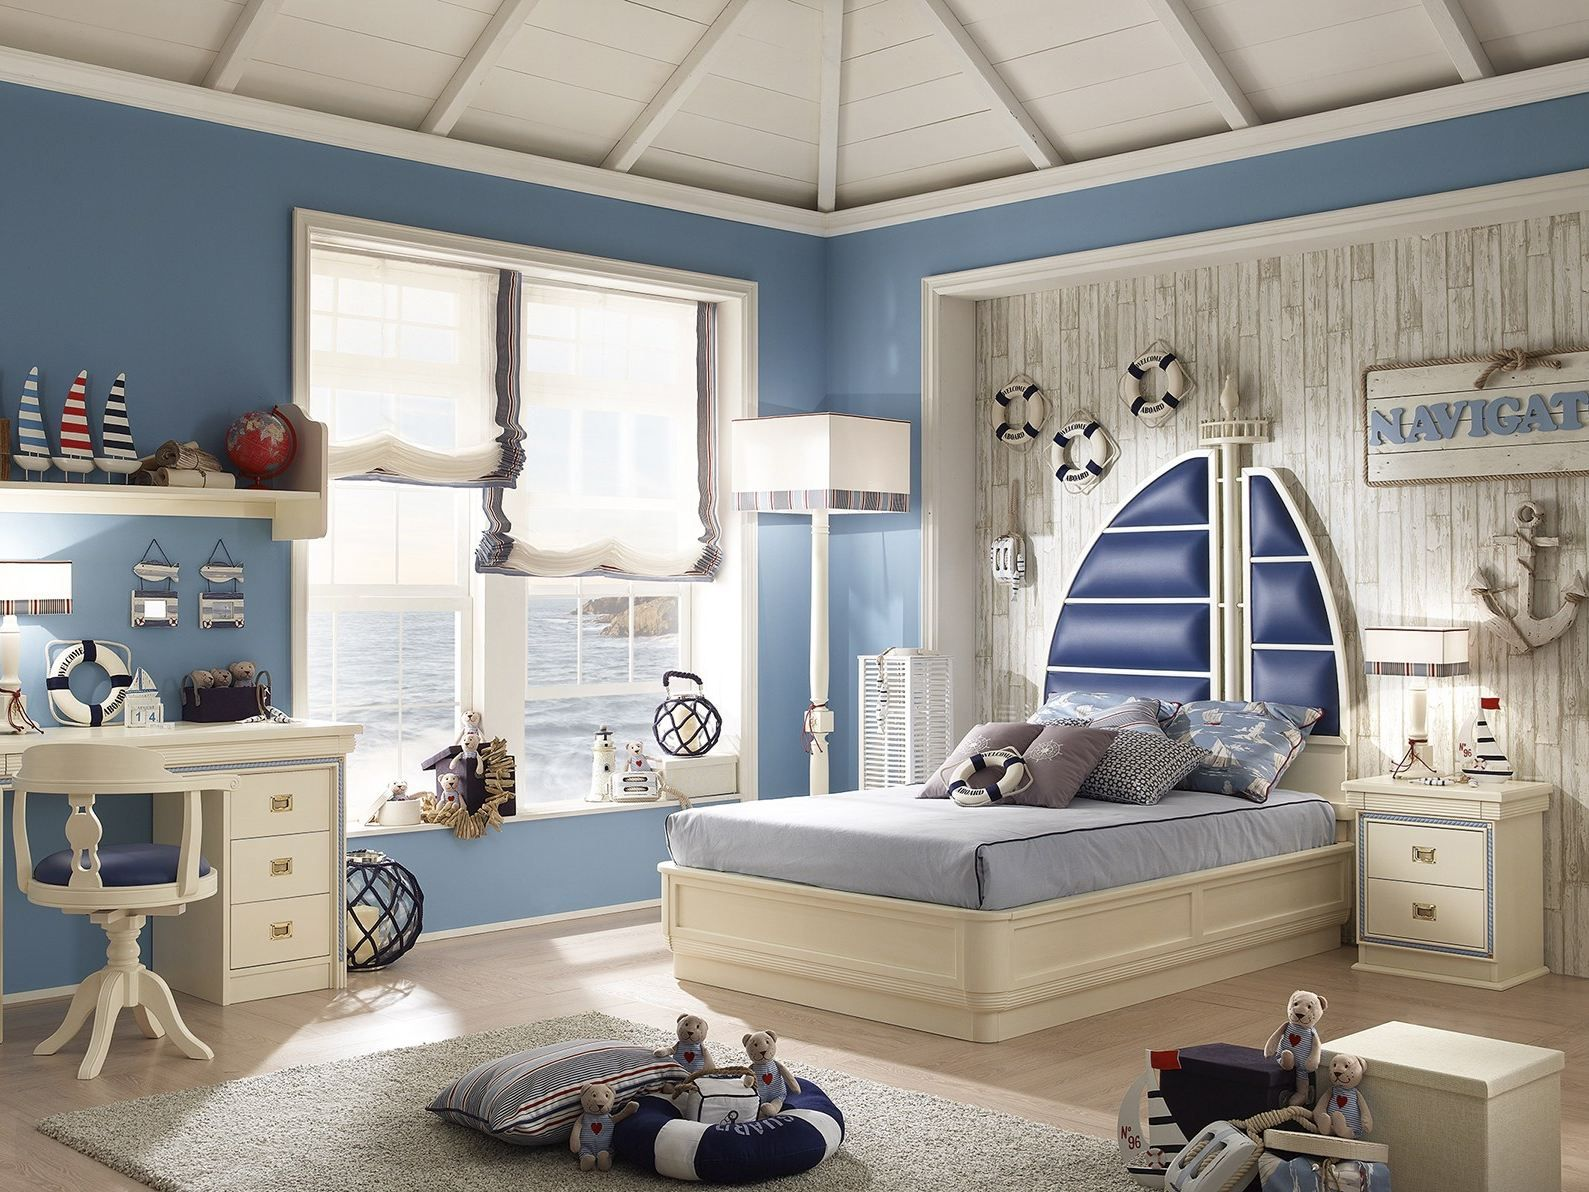 Download The Catalogue And Request Prices Of Navigator Storage Bed By Caroti Full Si Detskaya V Morskom Stile Detskaya Komnata V Morskom Stile Golubye Komnaty